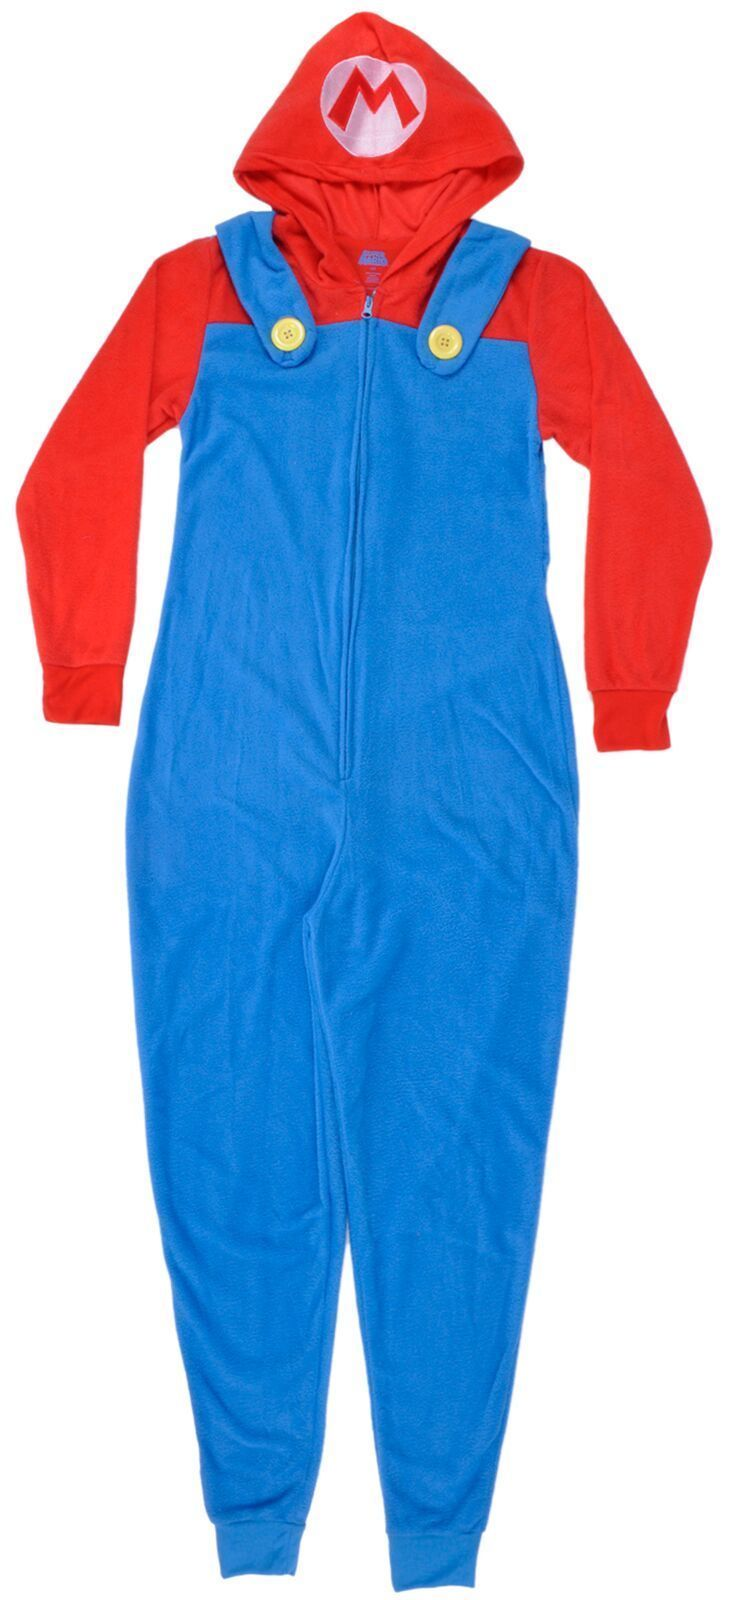 Super Mario Pajama Union Suit Sleepwear Microfleece Cosplay Womens